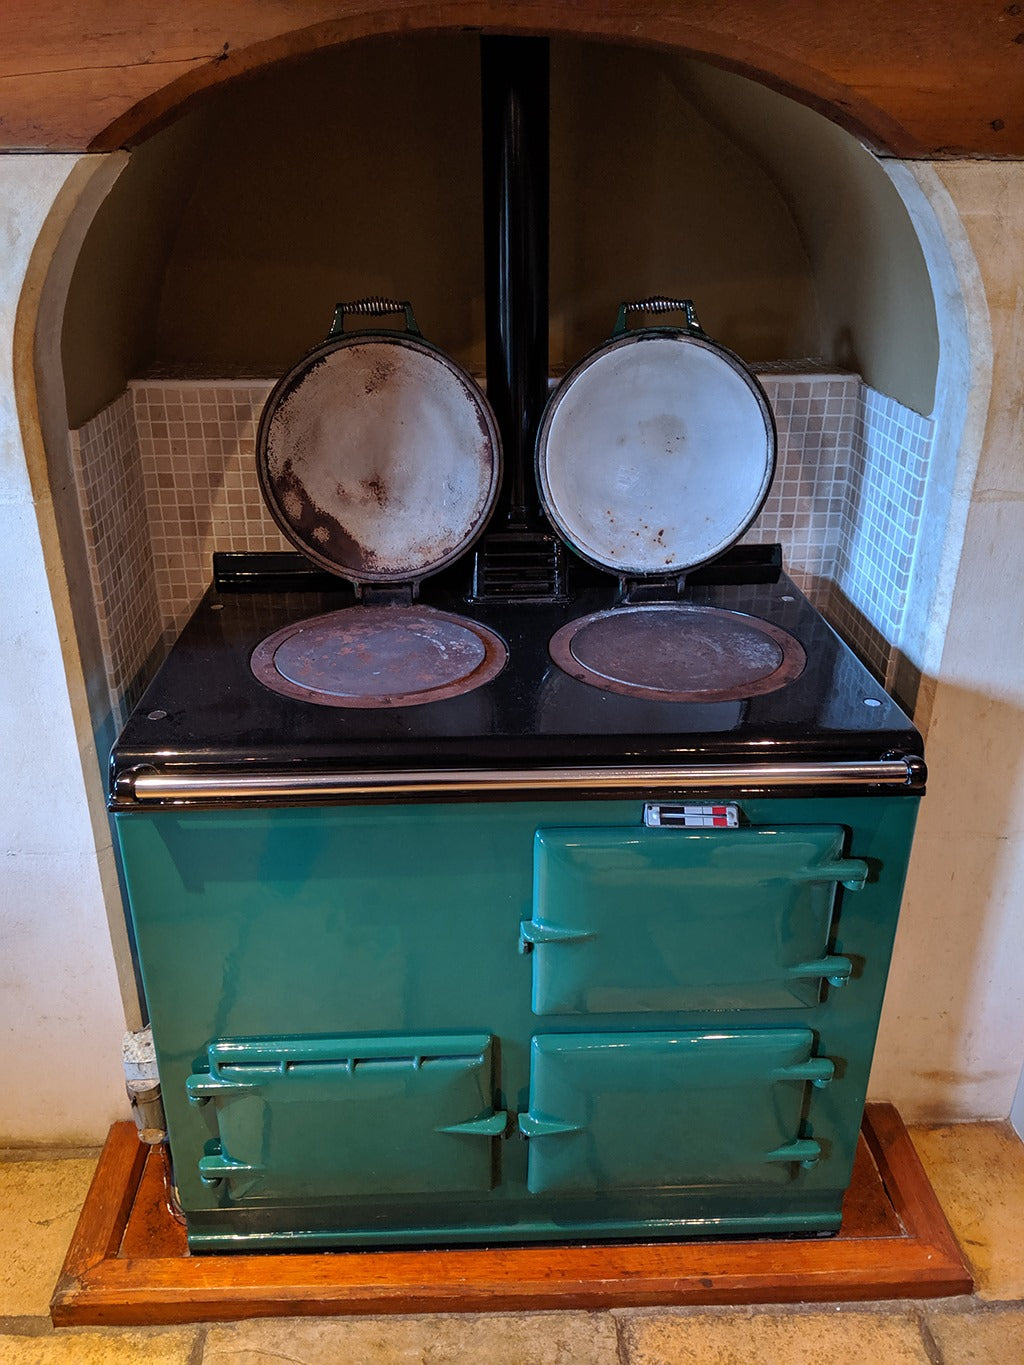 Green 2 oven Aga range cooker with lids up